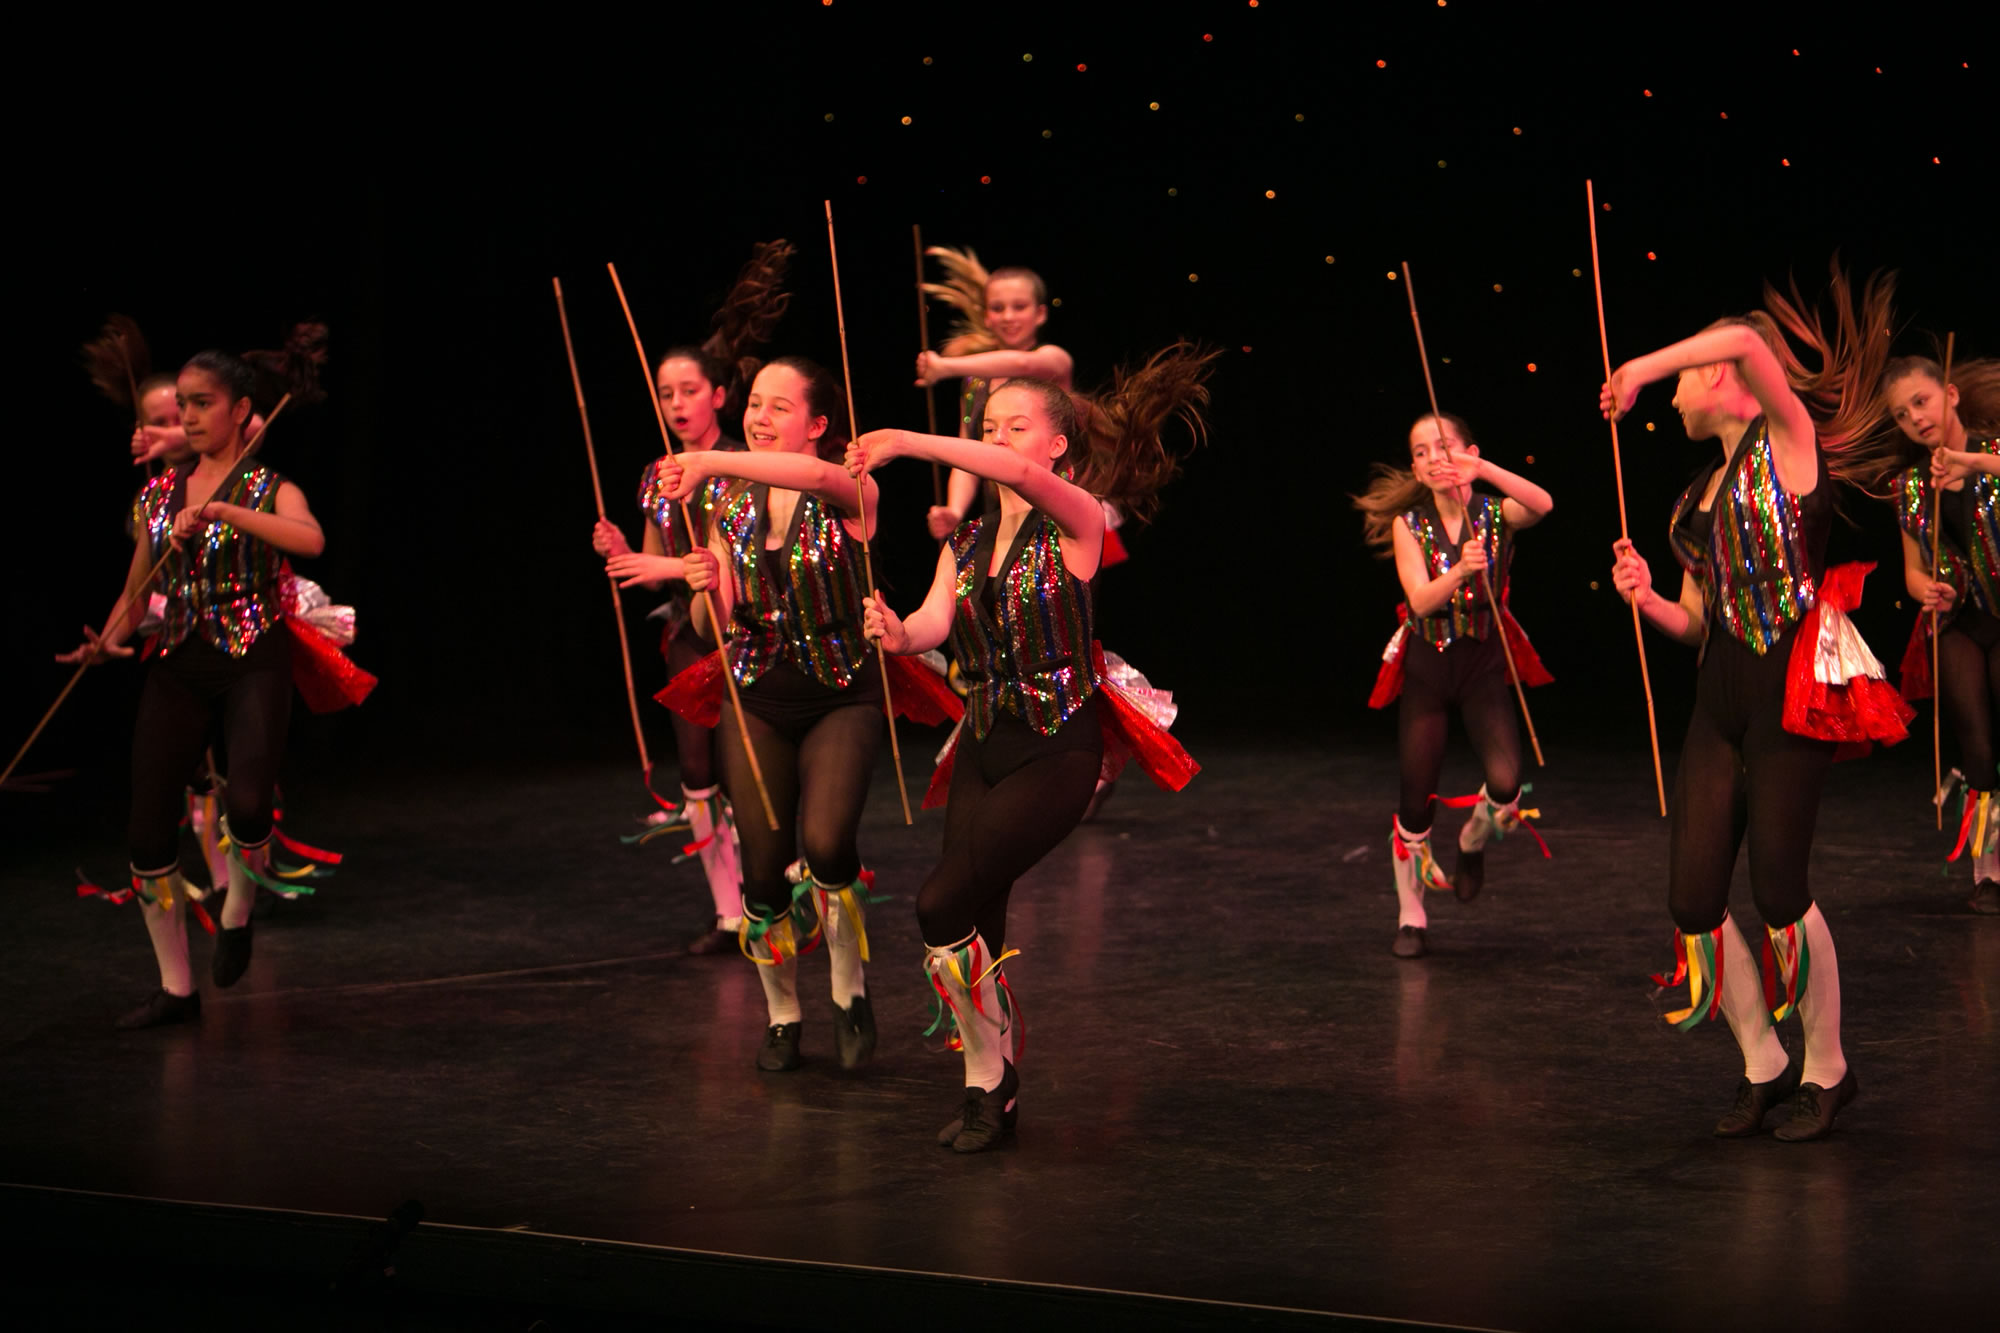 Hitchin_School_of_Dance_Show_2019-SM1_2672.jpg